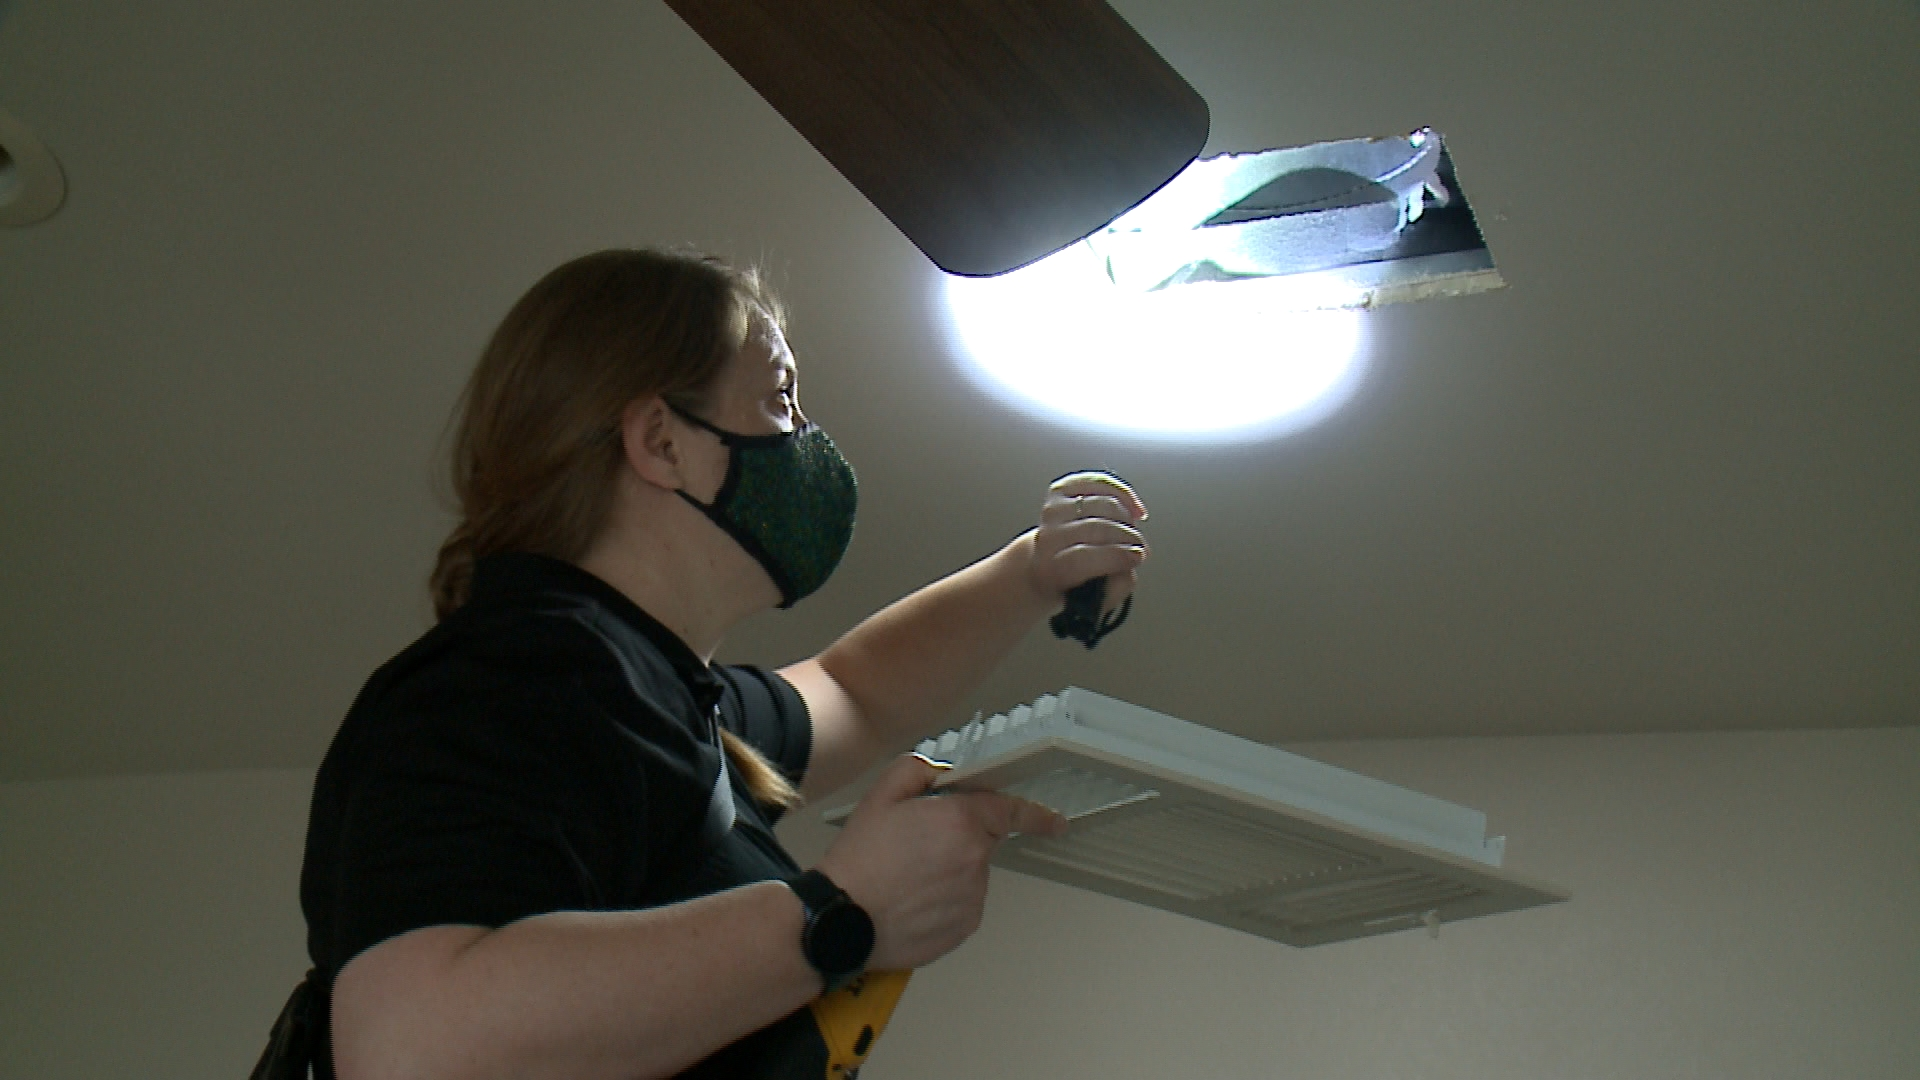 A woman on a ladder shines a flashlight into a air vent in a home as part of a mold inspection